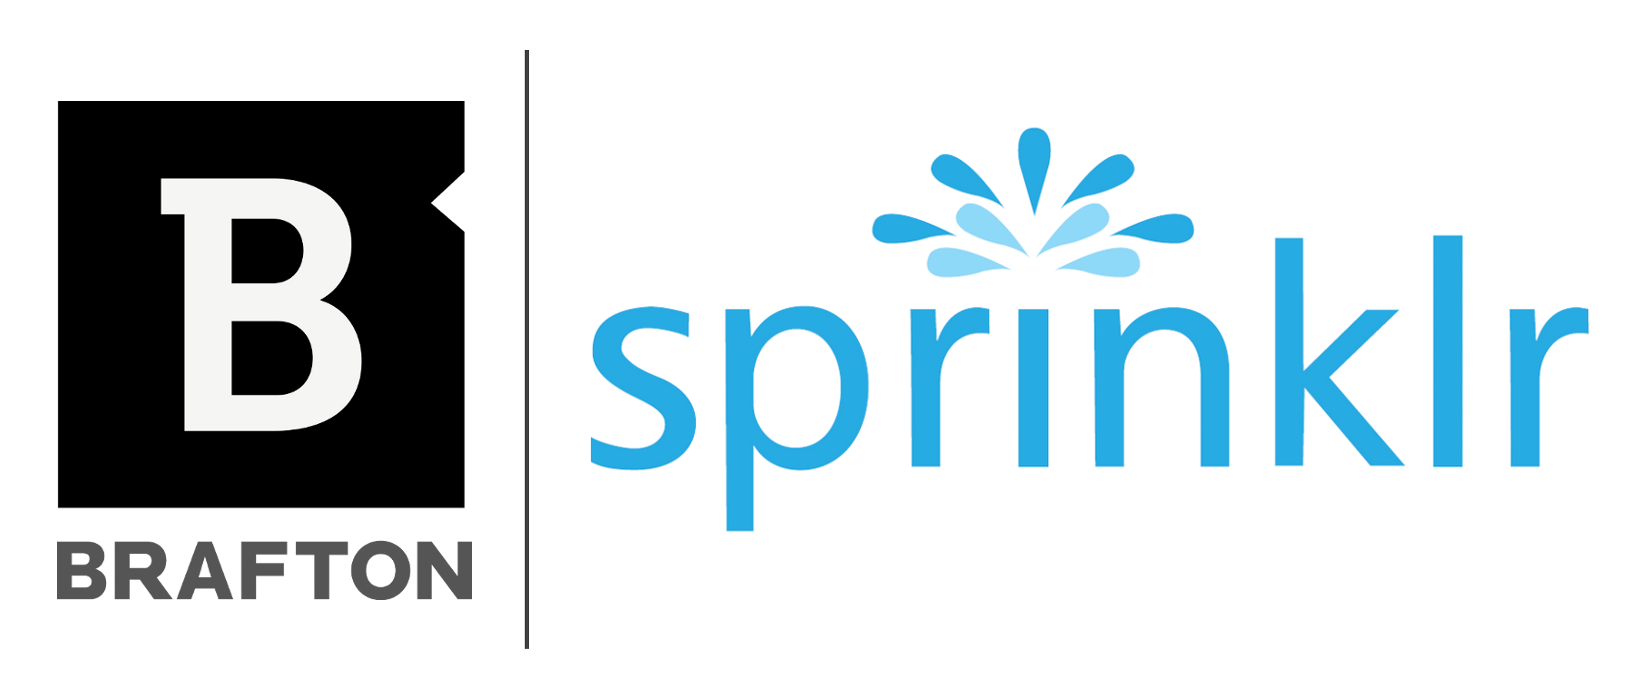 Brafton partners with Sprinklr to provide clients with smarter social analytics.